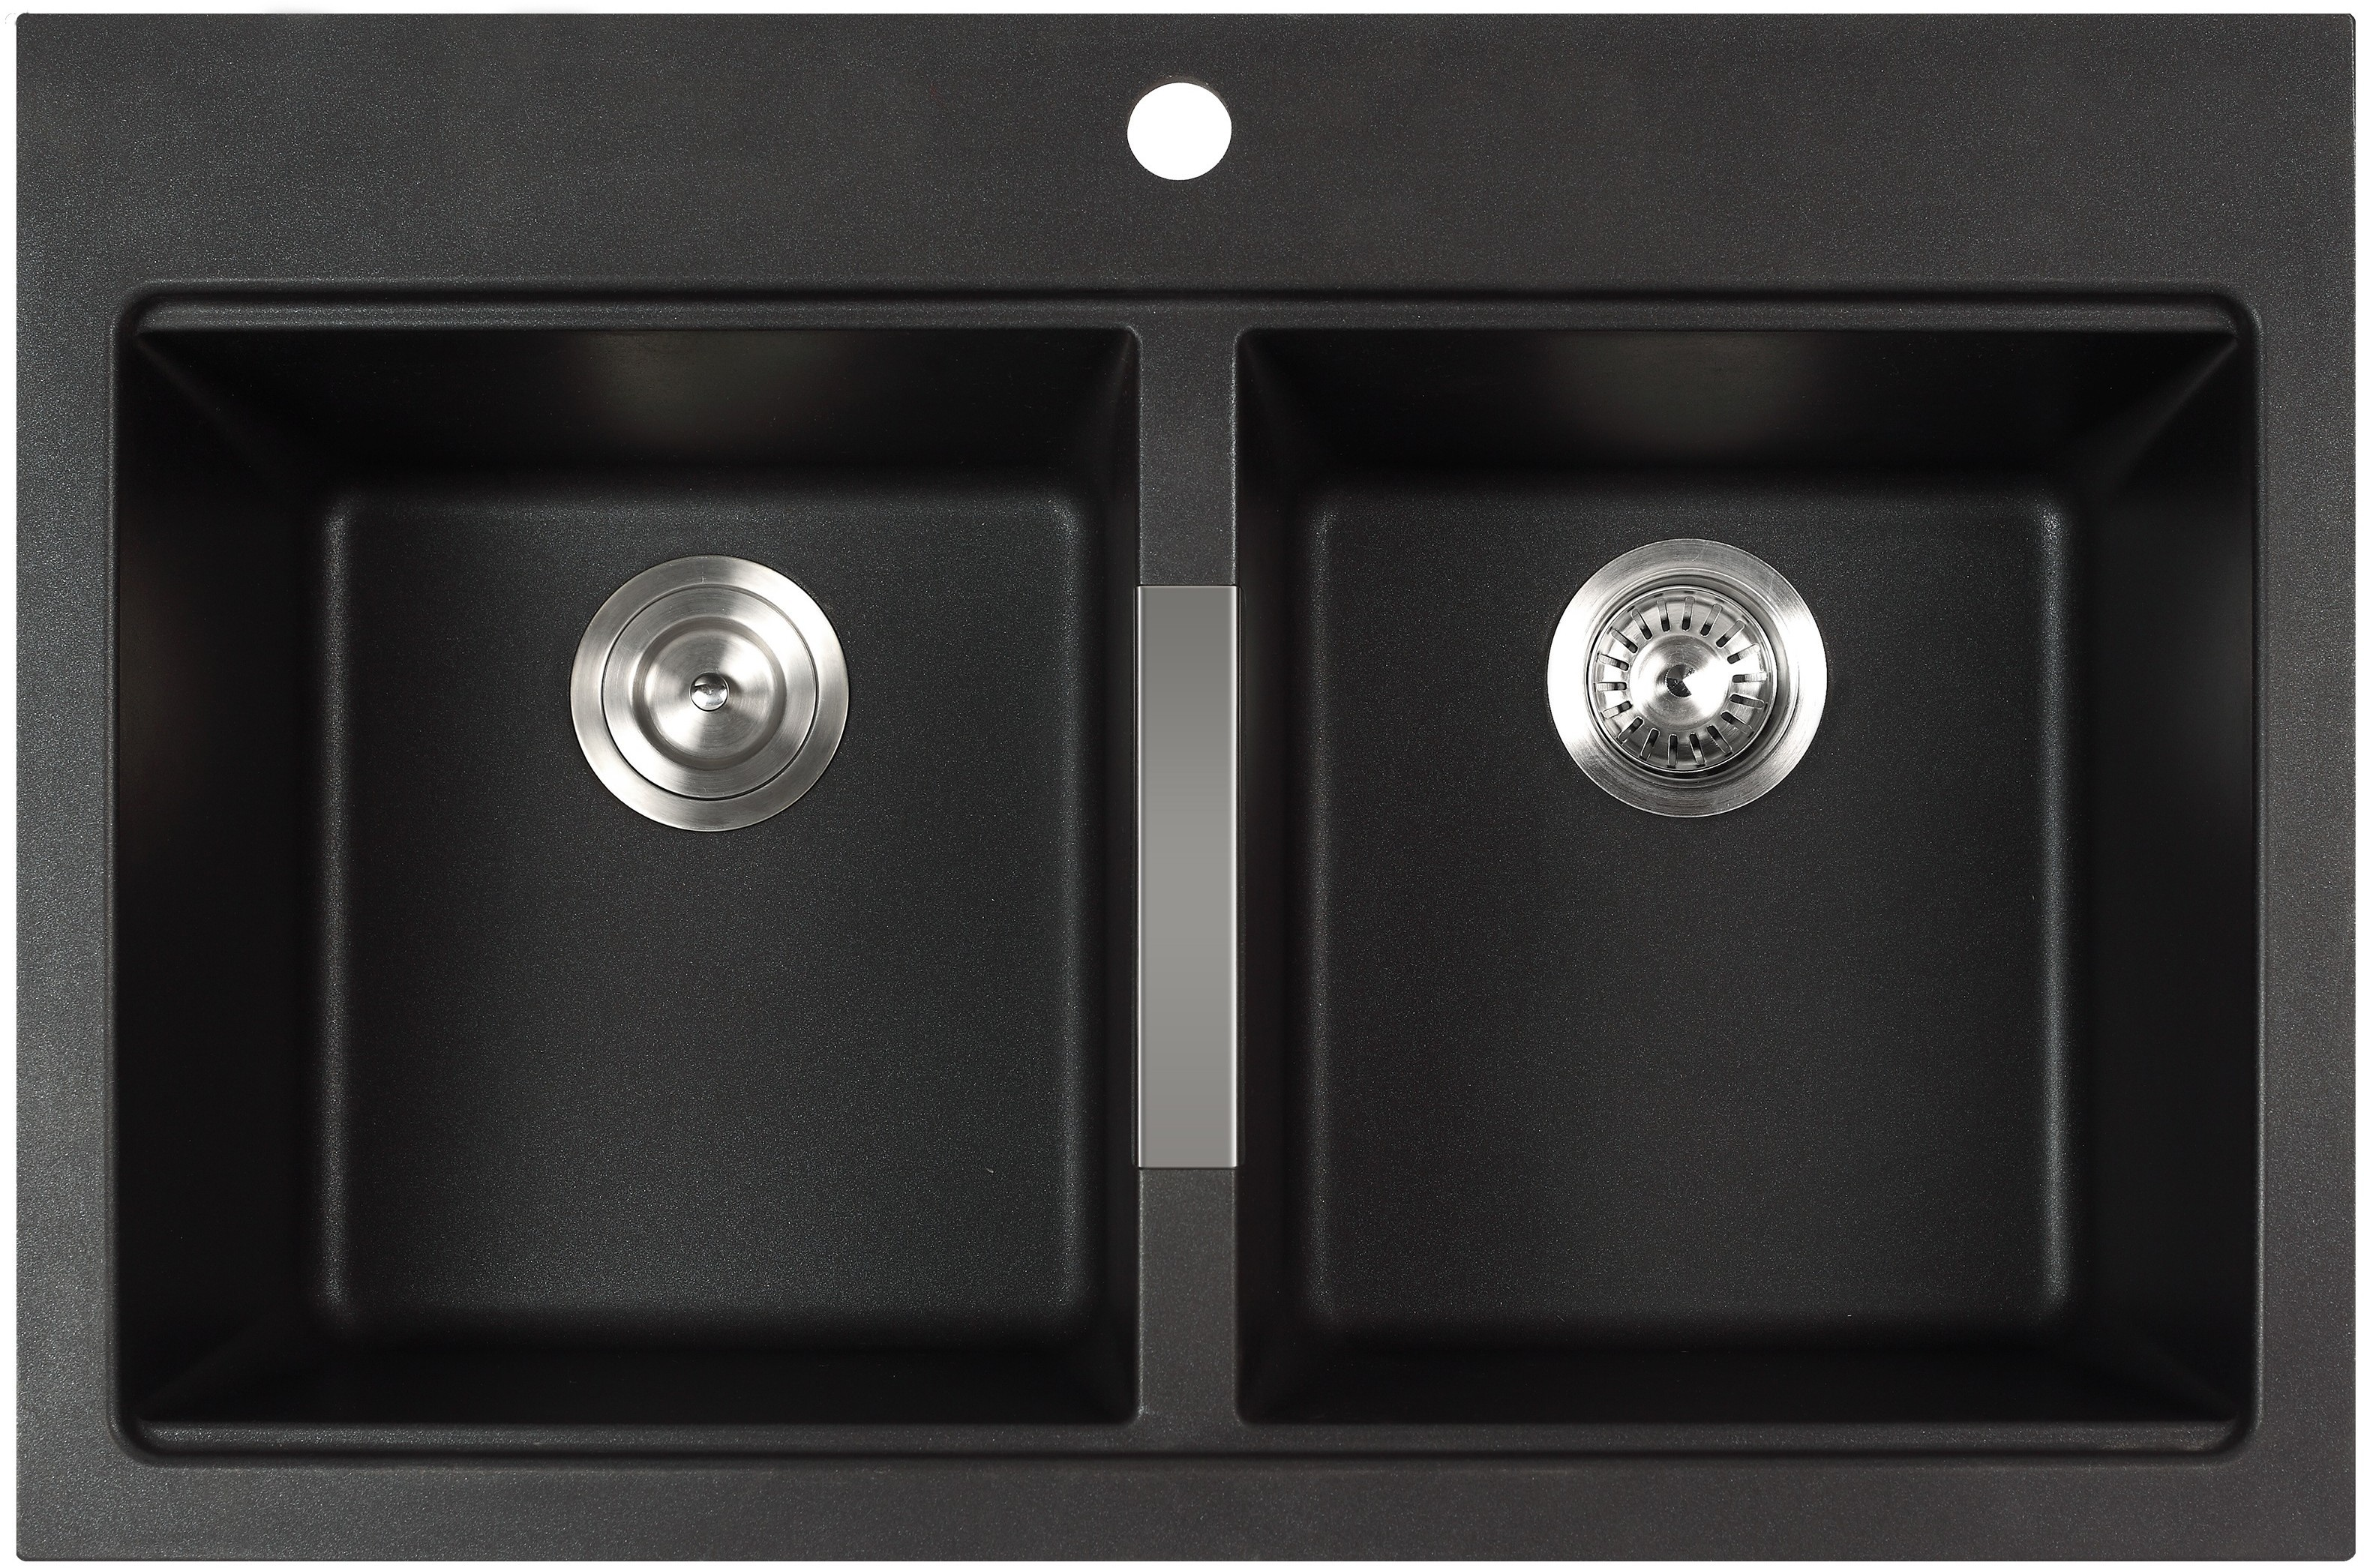 Kraus Kgd433b 33 1 2 Inch Undermount Drop In Double Bowl